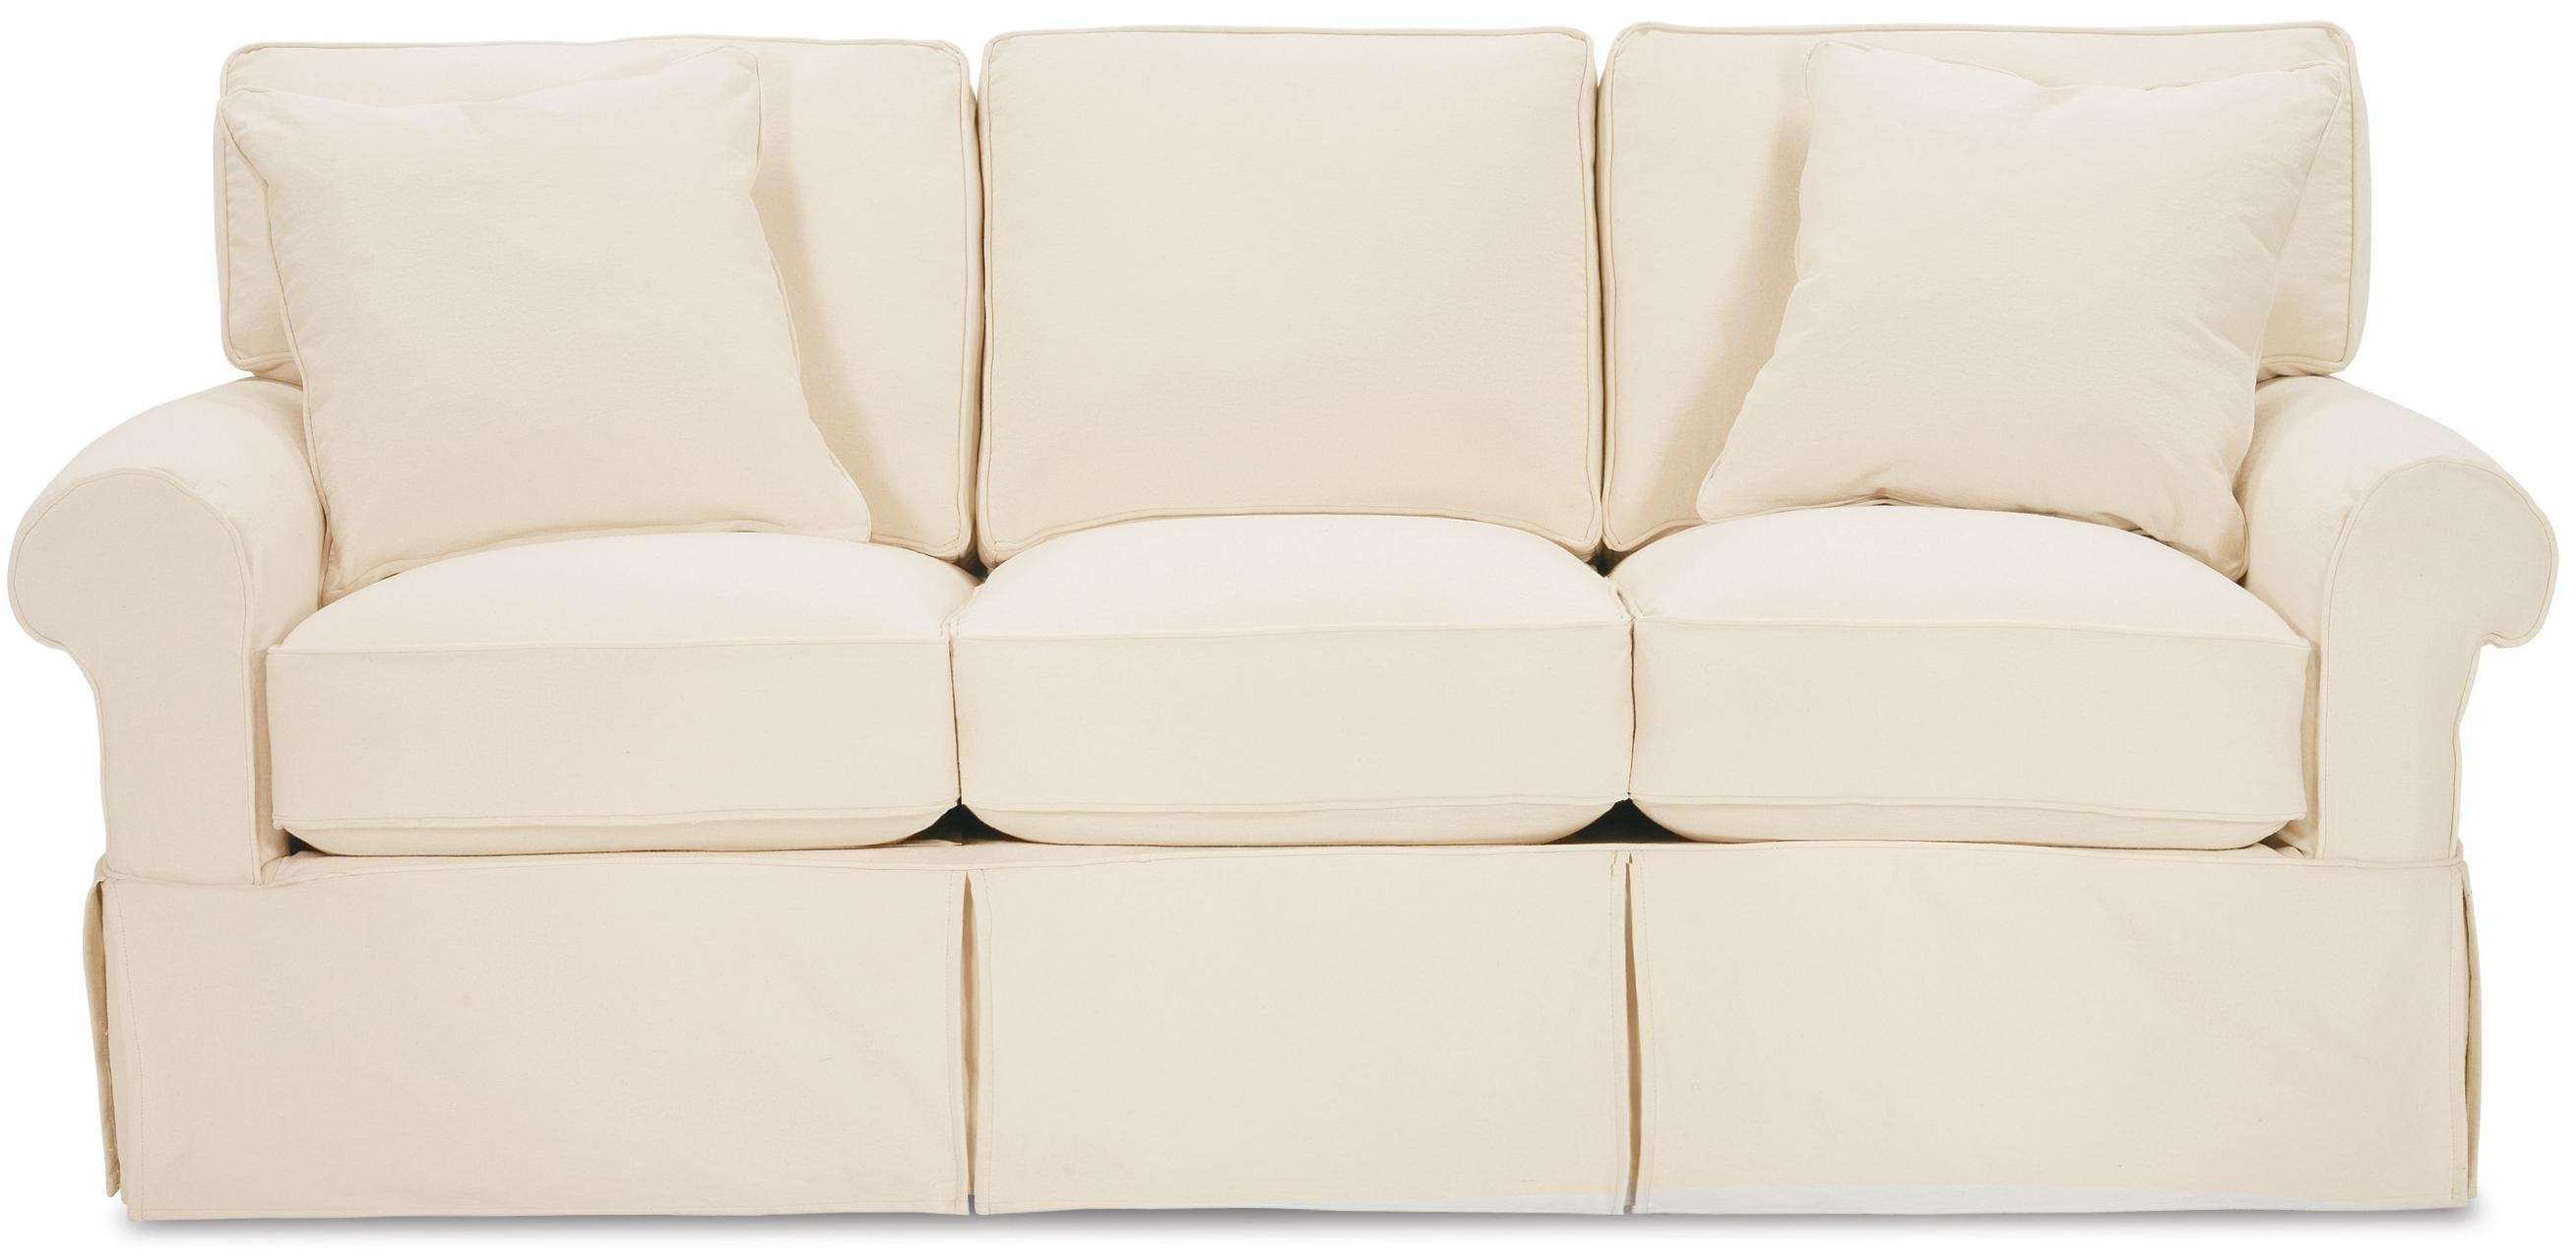 Charmant Rowe Nantucket Slip Cover Sofa With Pillows 442072